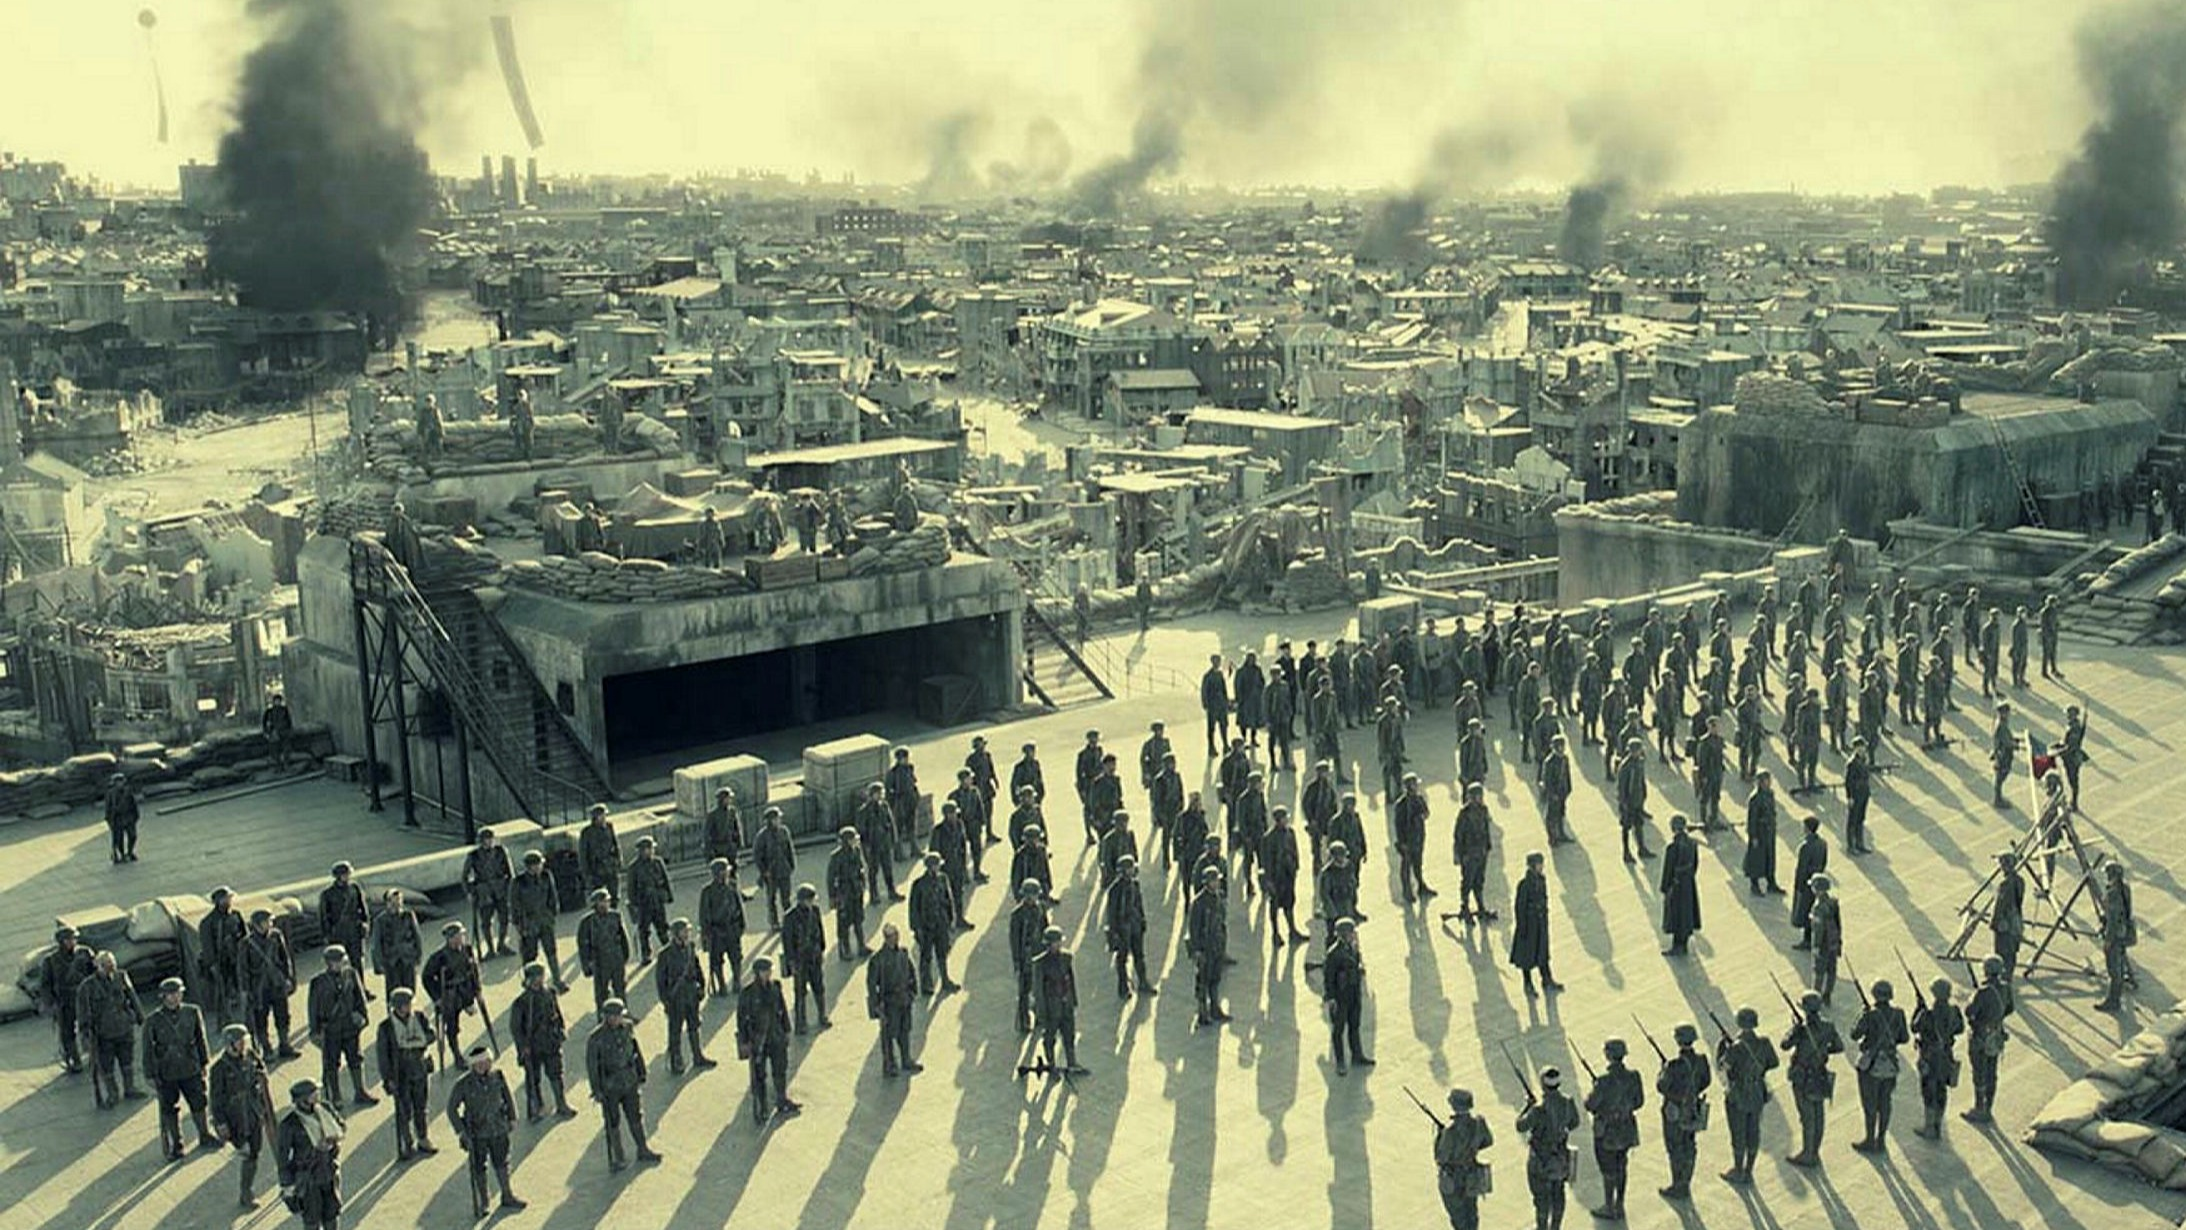 China war epic 'The Eight Hundred' tops global box office | Financial Times